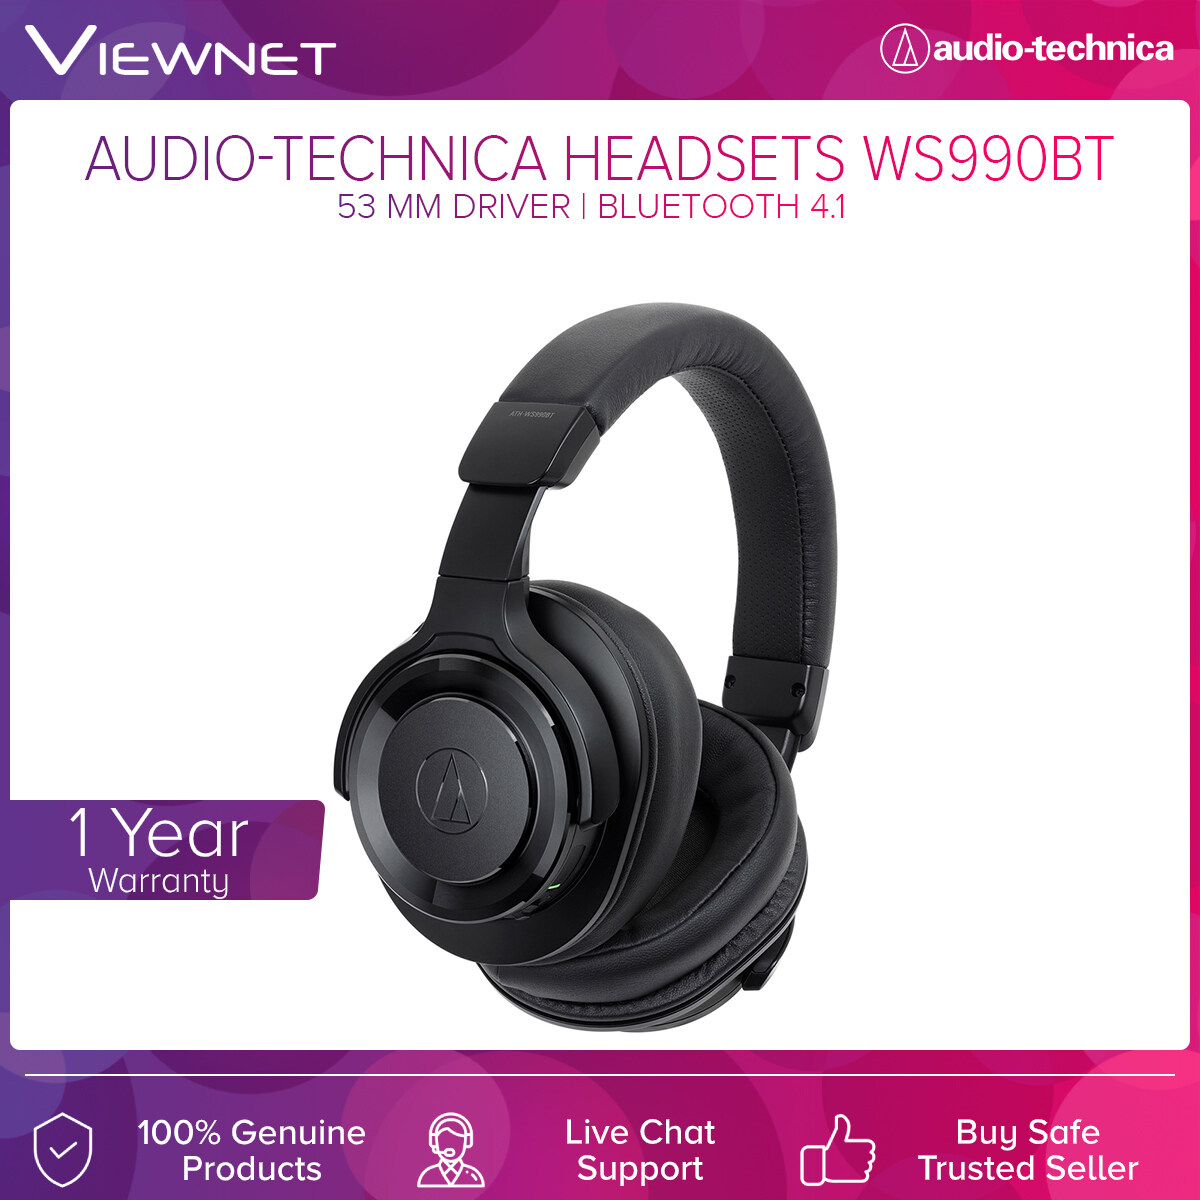 Audio-Technica Wireless Headsets ATH-WS990BT with 53mm Driver, Bluetooth 4.1, Noise Cancelling, Solid Bass, 5 - 40,000 Hz Frequency, 35 Hours Battery Life